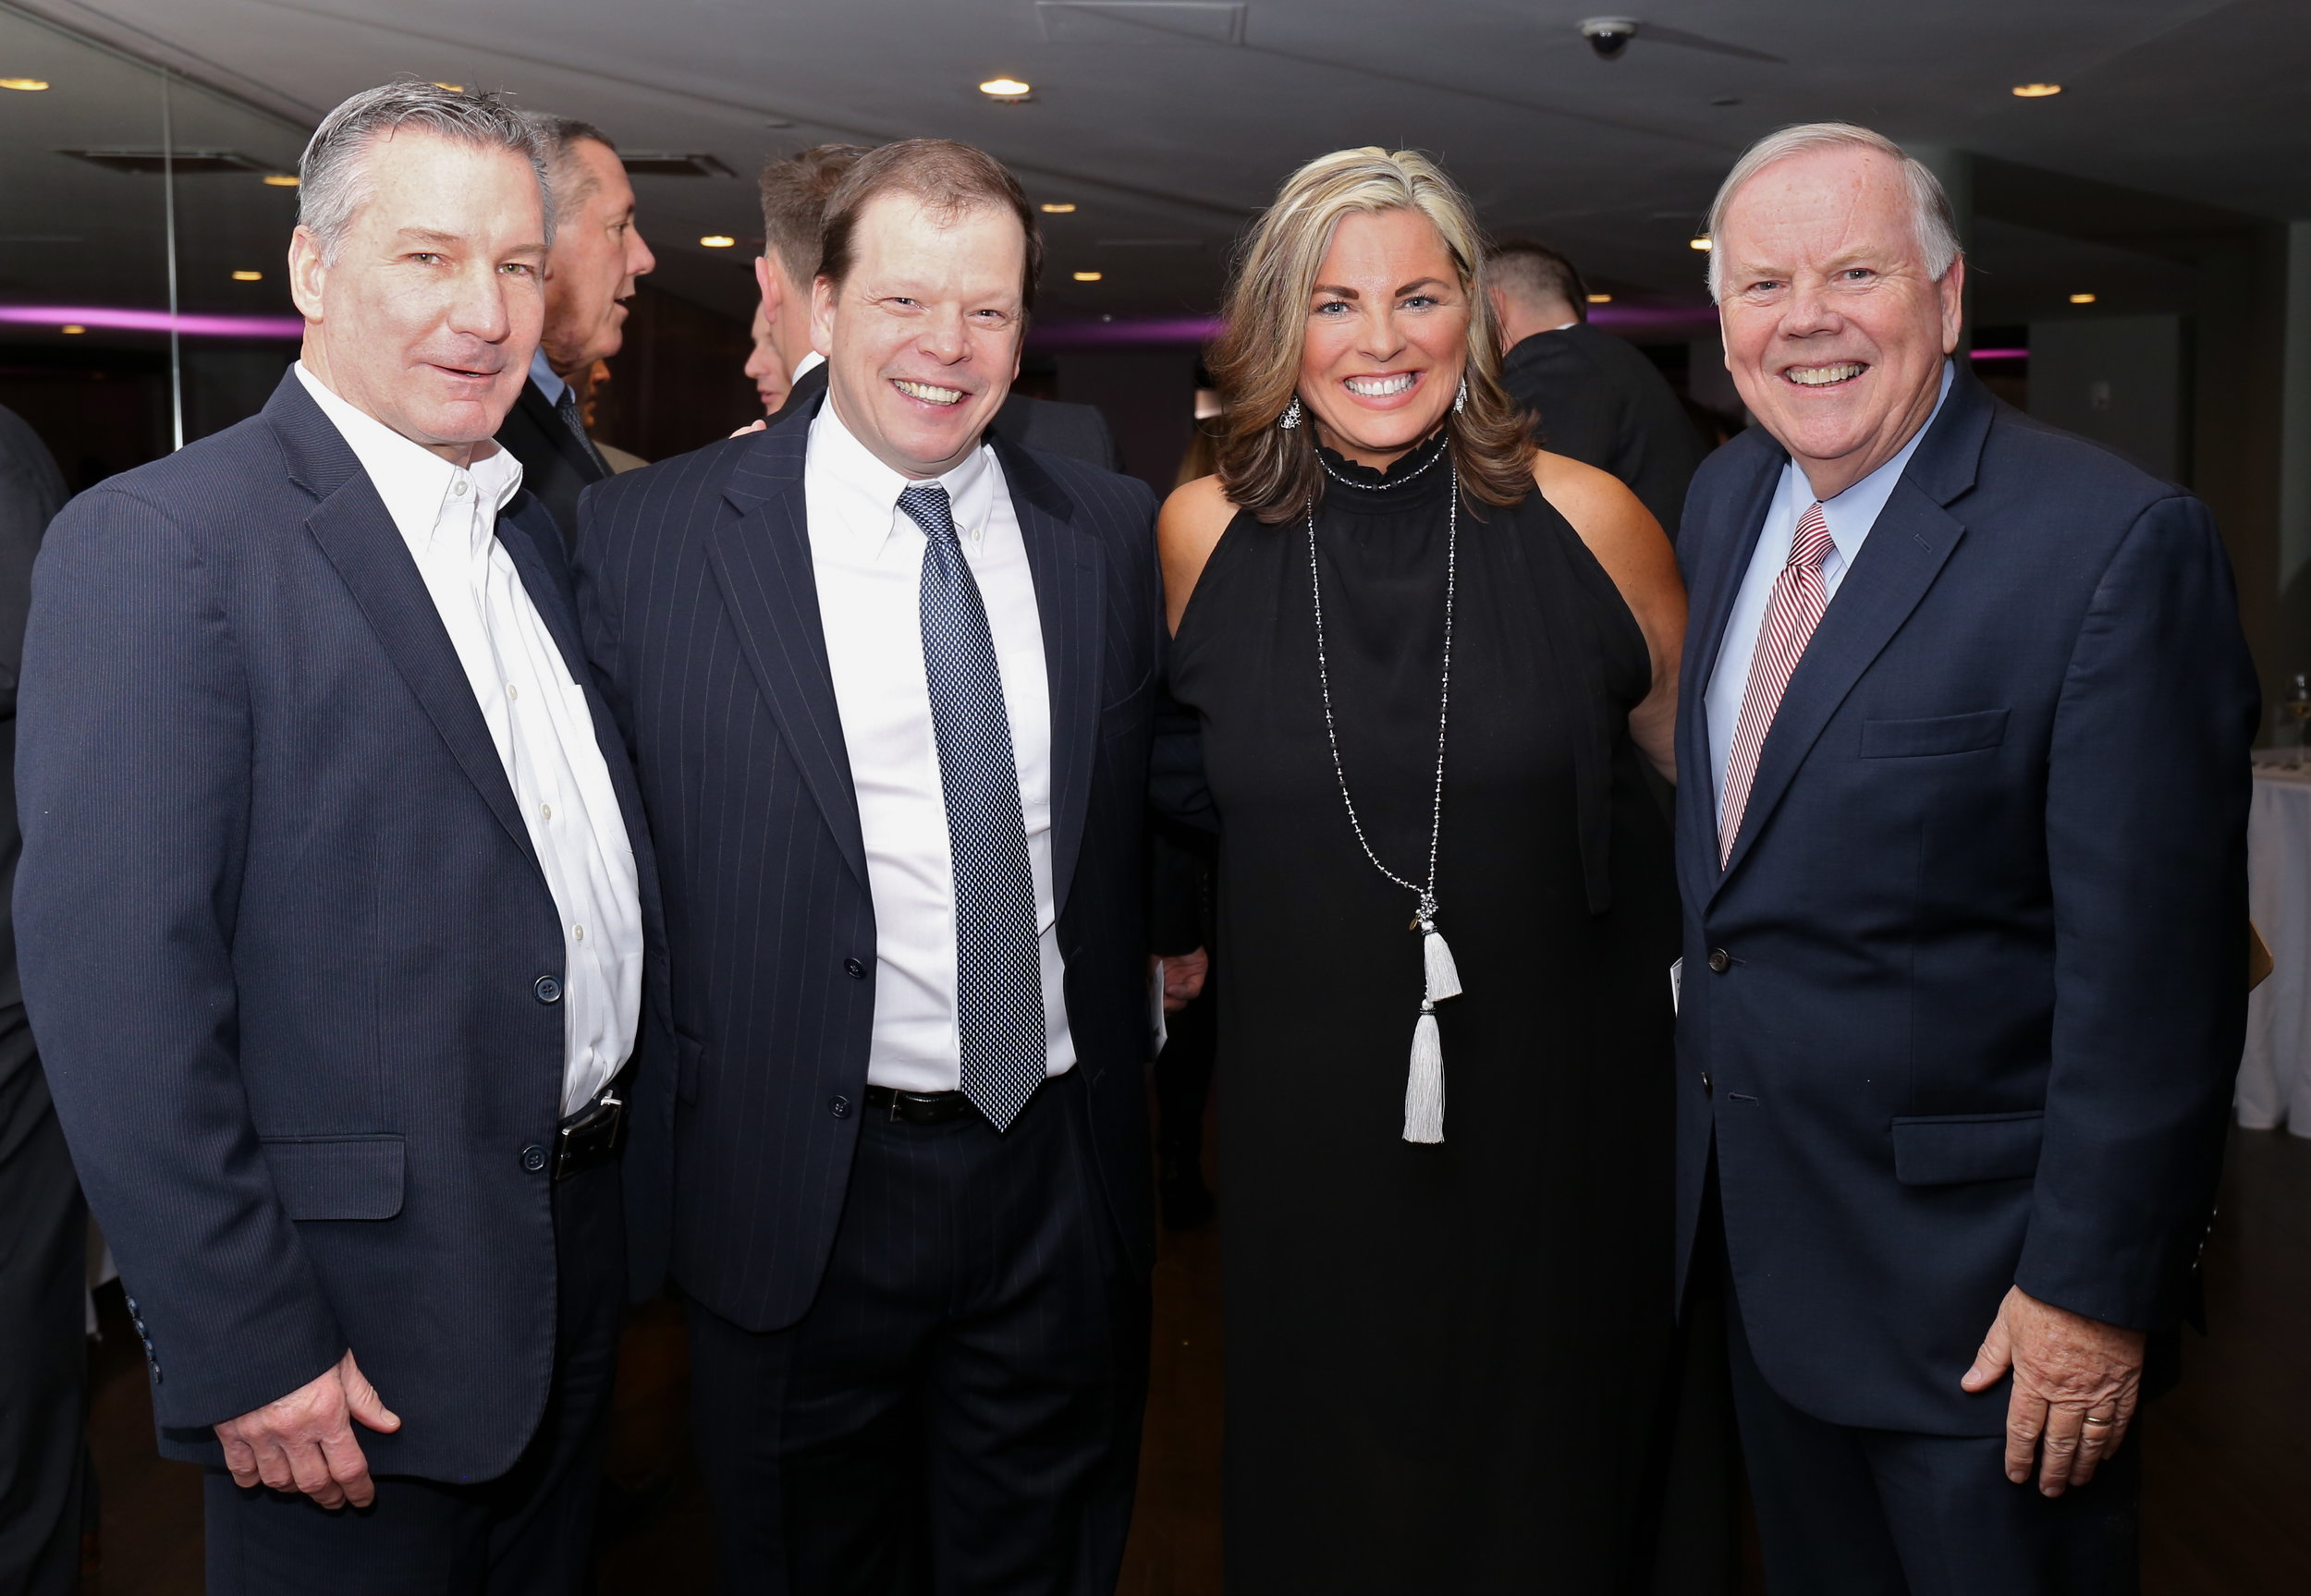 President & CEO of the Boys and Girls Clubs of Dorchester Bob Scannell, Chef Paul Wahlberg, Jett Foundation Founder Christine McSherry, and Boston photographer Bill Brett.